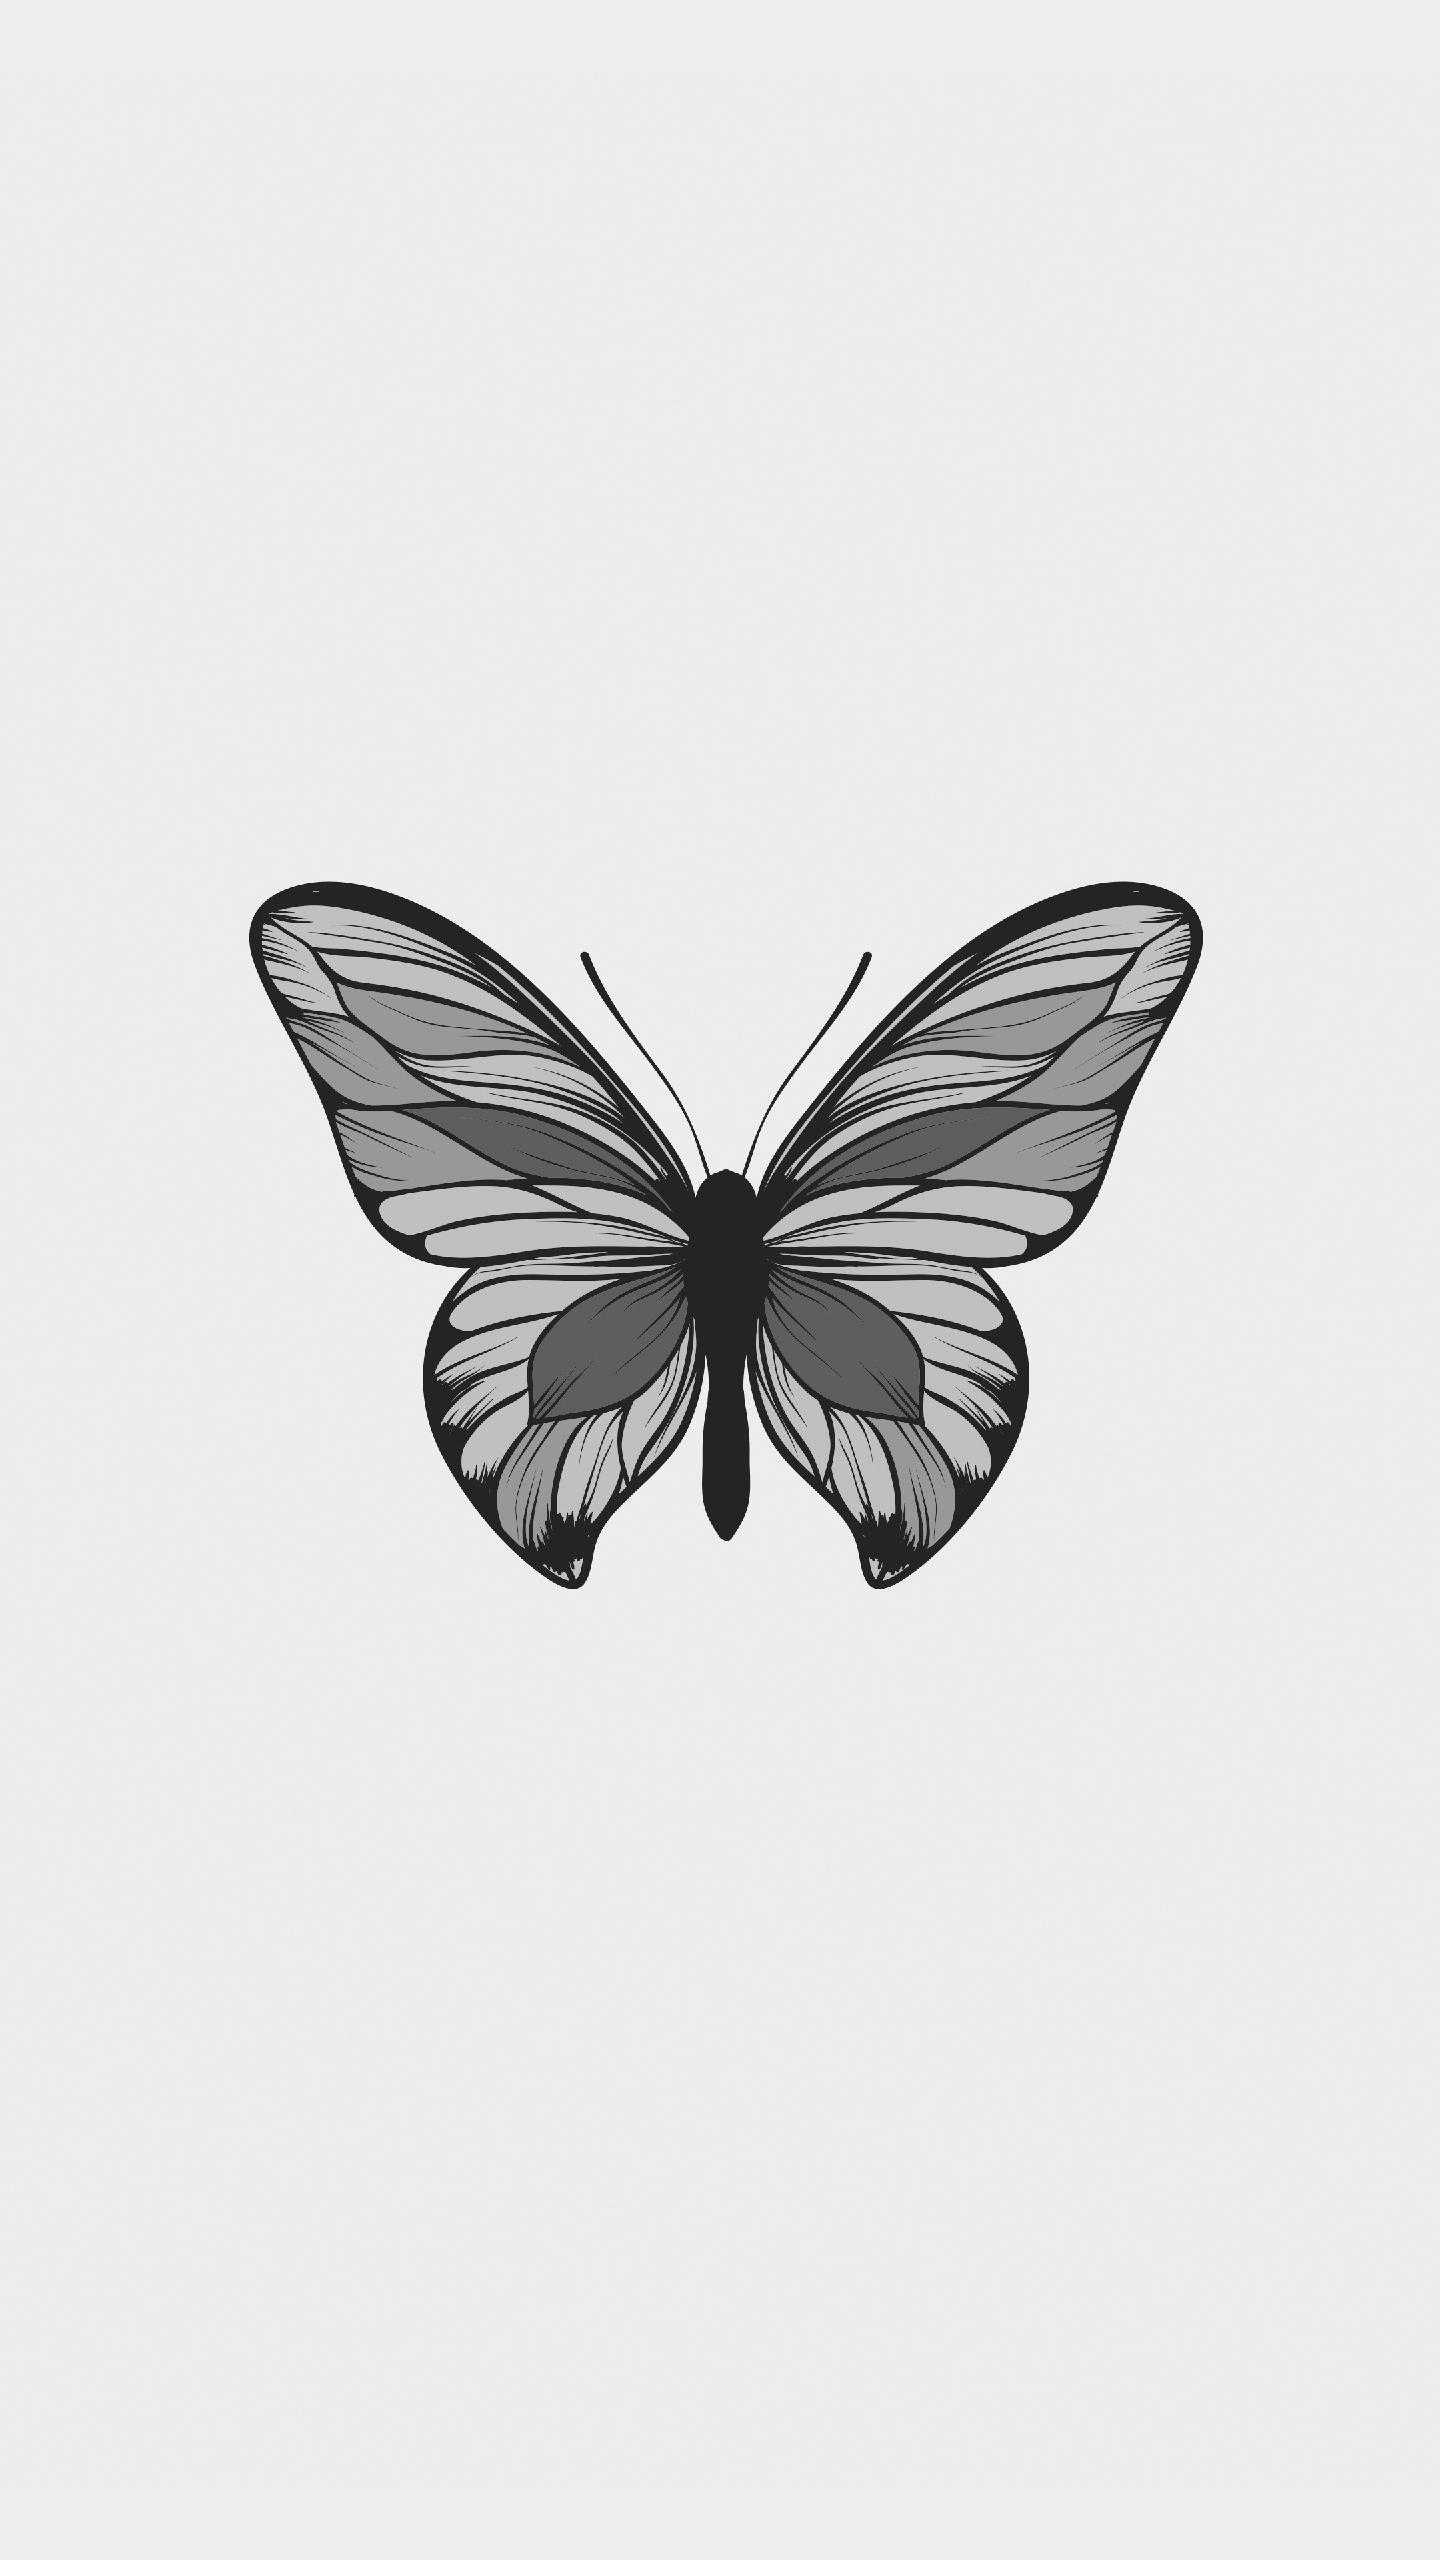 Butterfly Minimal Background Hd Wallpaper 025